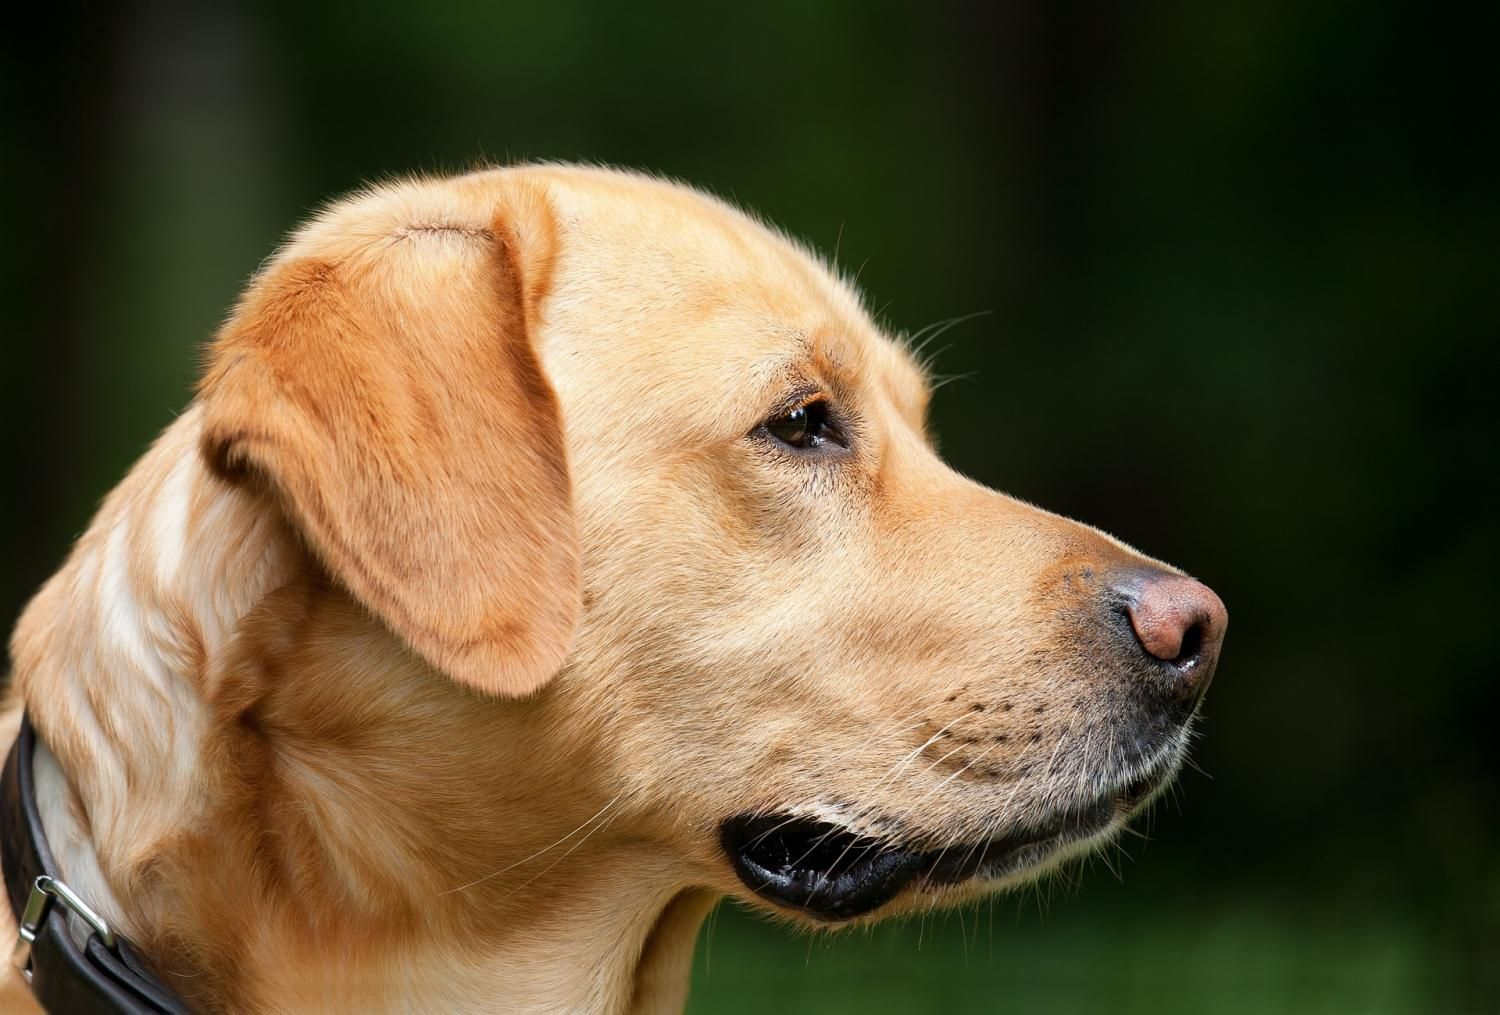 Phys Org A Small Team Of Researchers From The U S The U K And France Has Found That Puppies Are More Receptive To Dog Direc Dogs Dog Toothpaste Dog Cancer